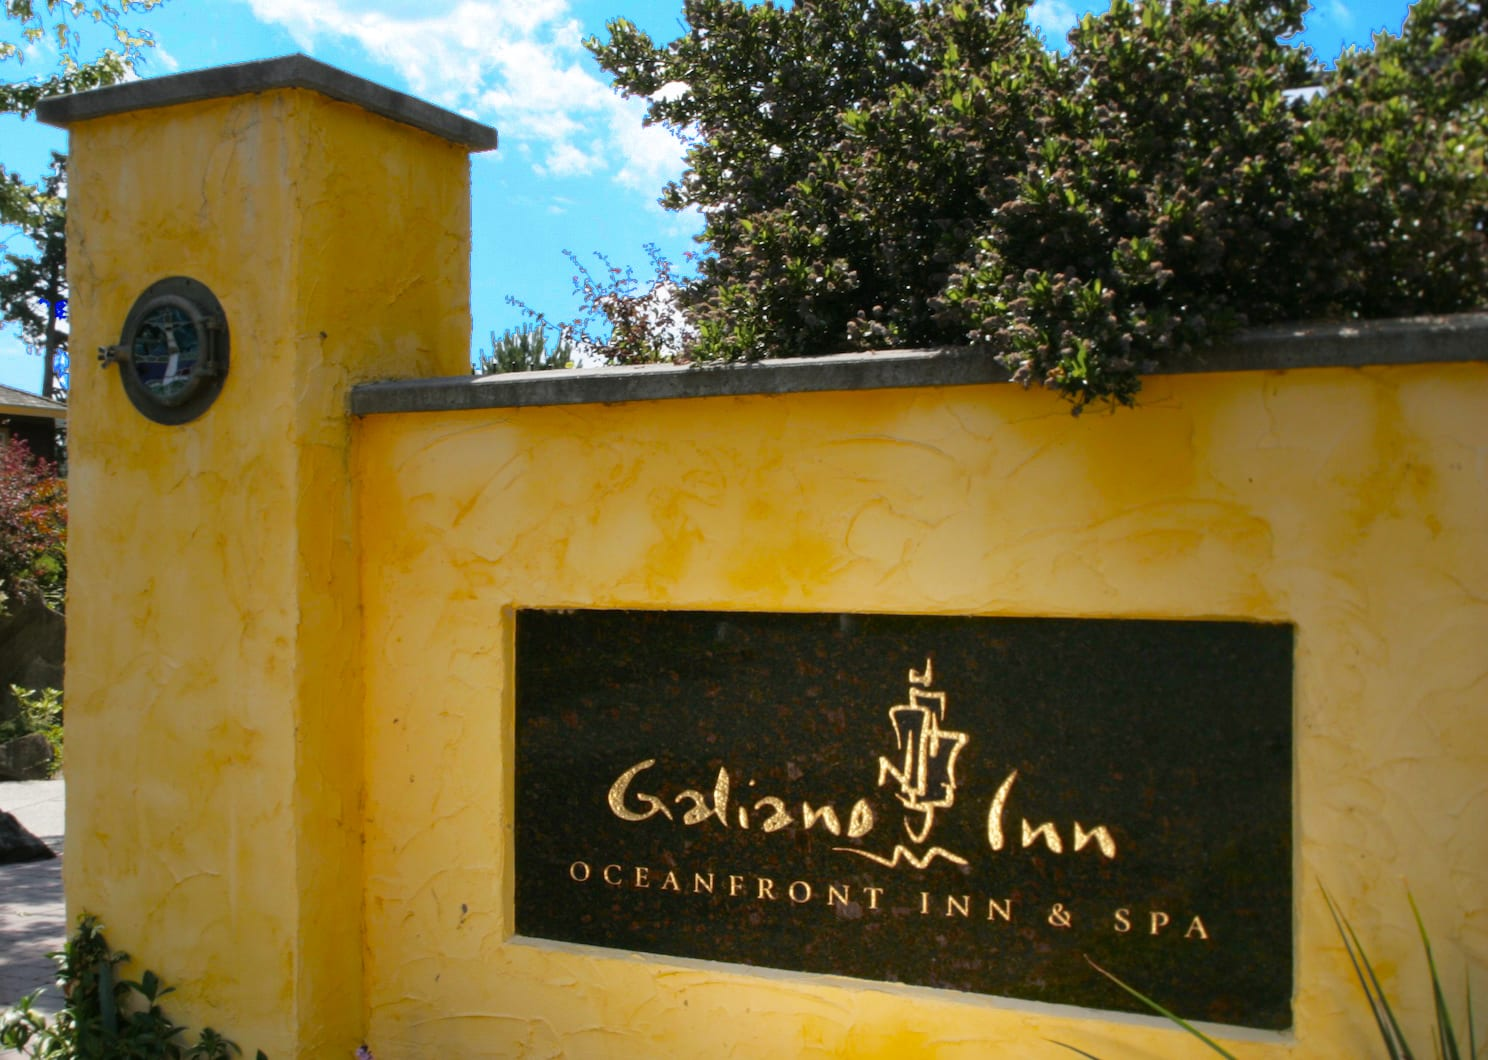 Galiano Oceanfront Inn and Spa welcomes you